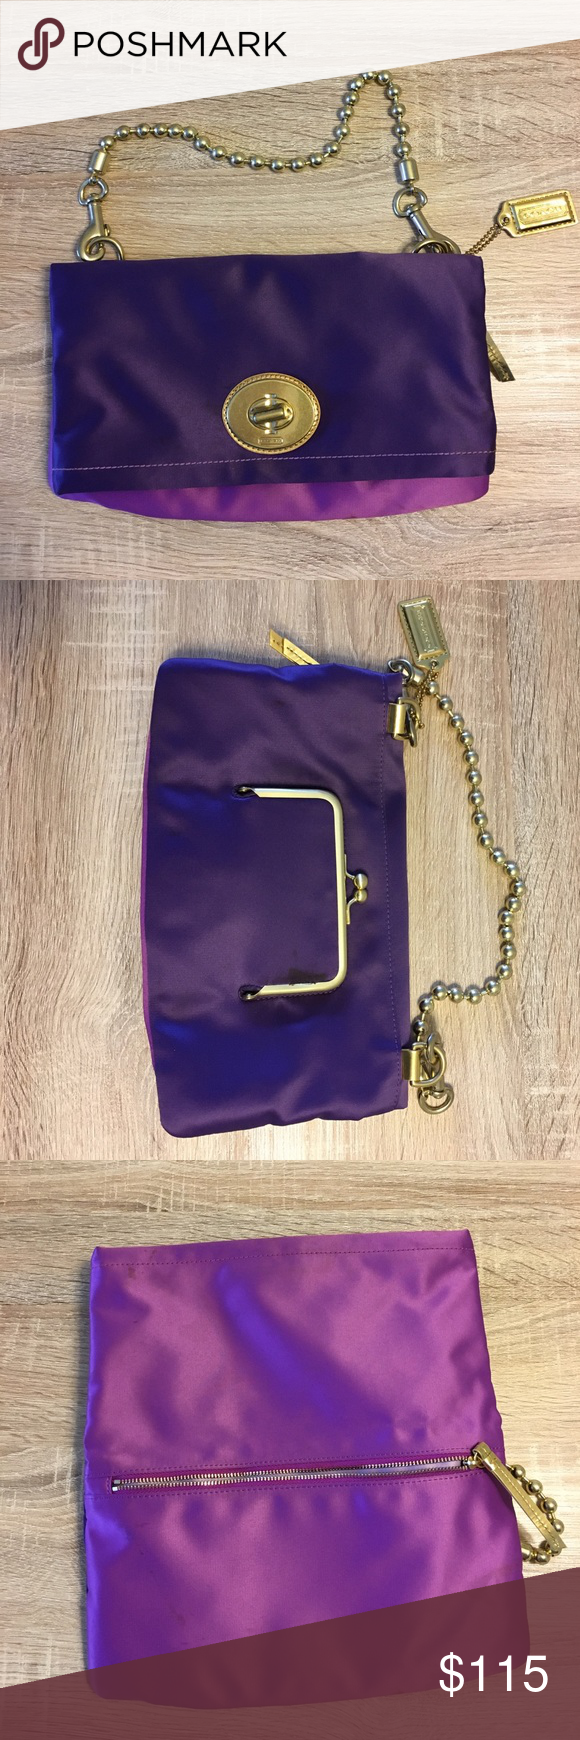 Coach Two Tone Purple Satin Bag with Gold Hardware Coach Two Tone Purple Satin Bag with Gold Hardware - Has some stains Coach Bags Clutches & Wristlets